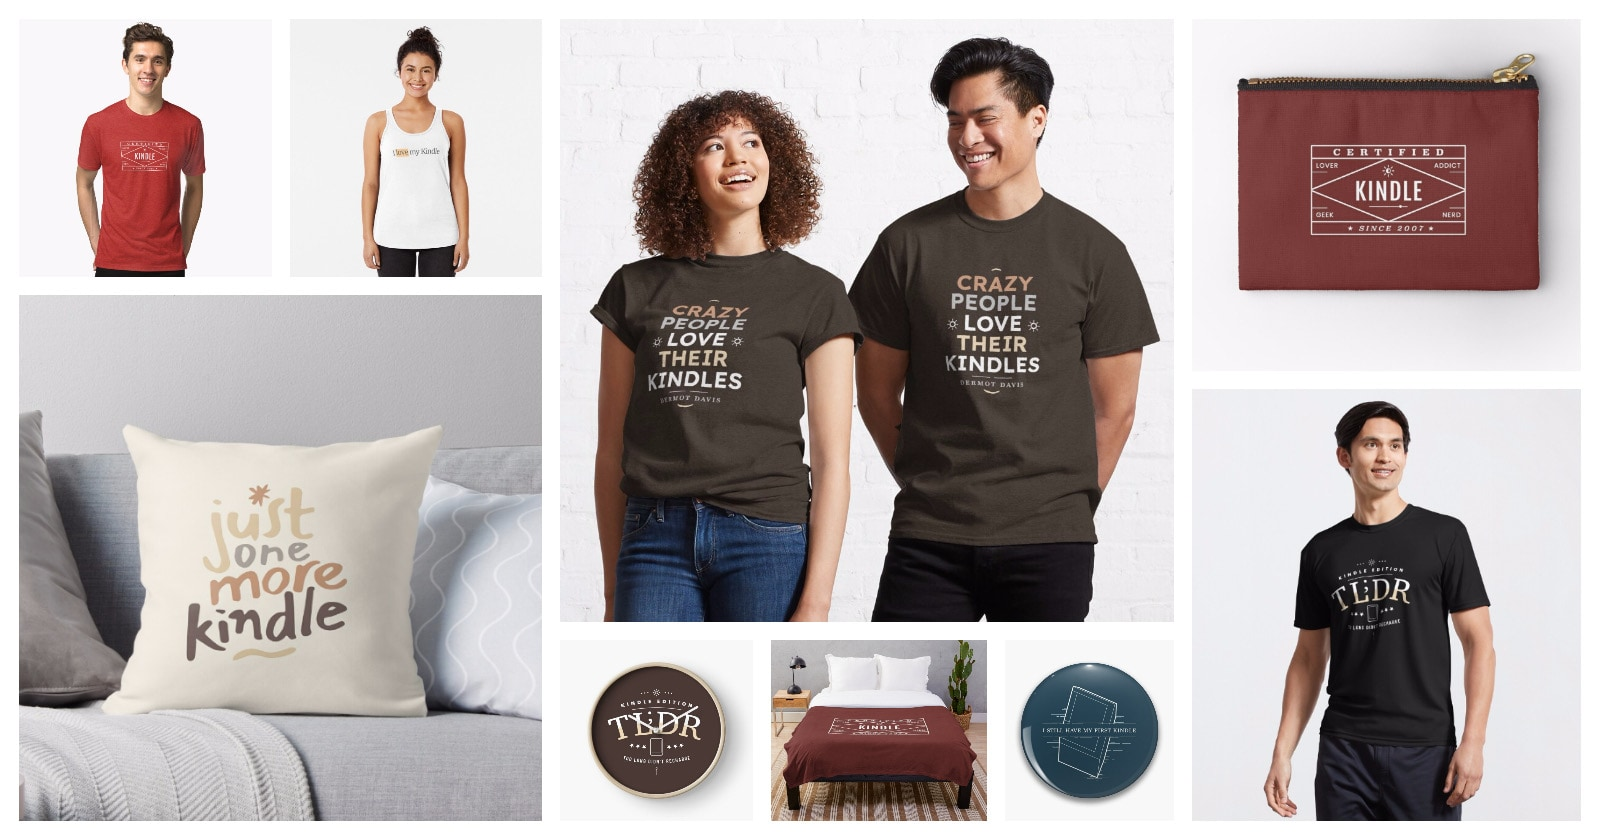 Best t-shirts, accessories, home decor for Kindle lovers